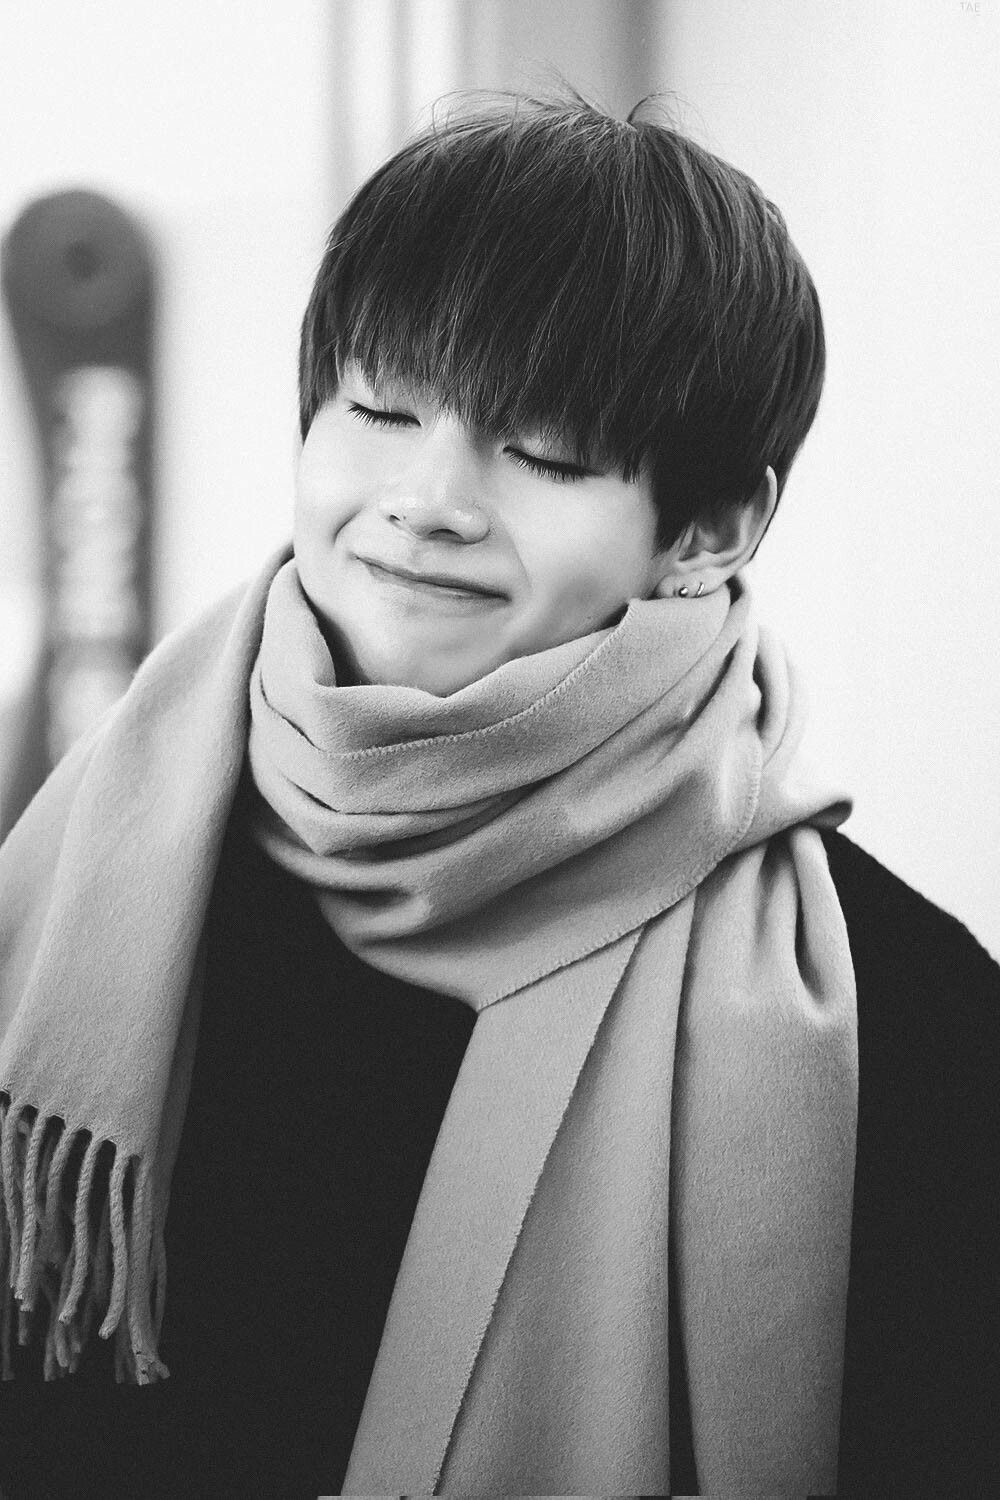 A cozy TaeTae for you